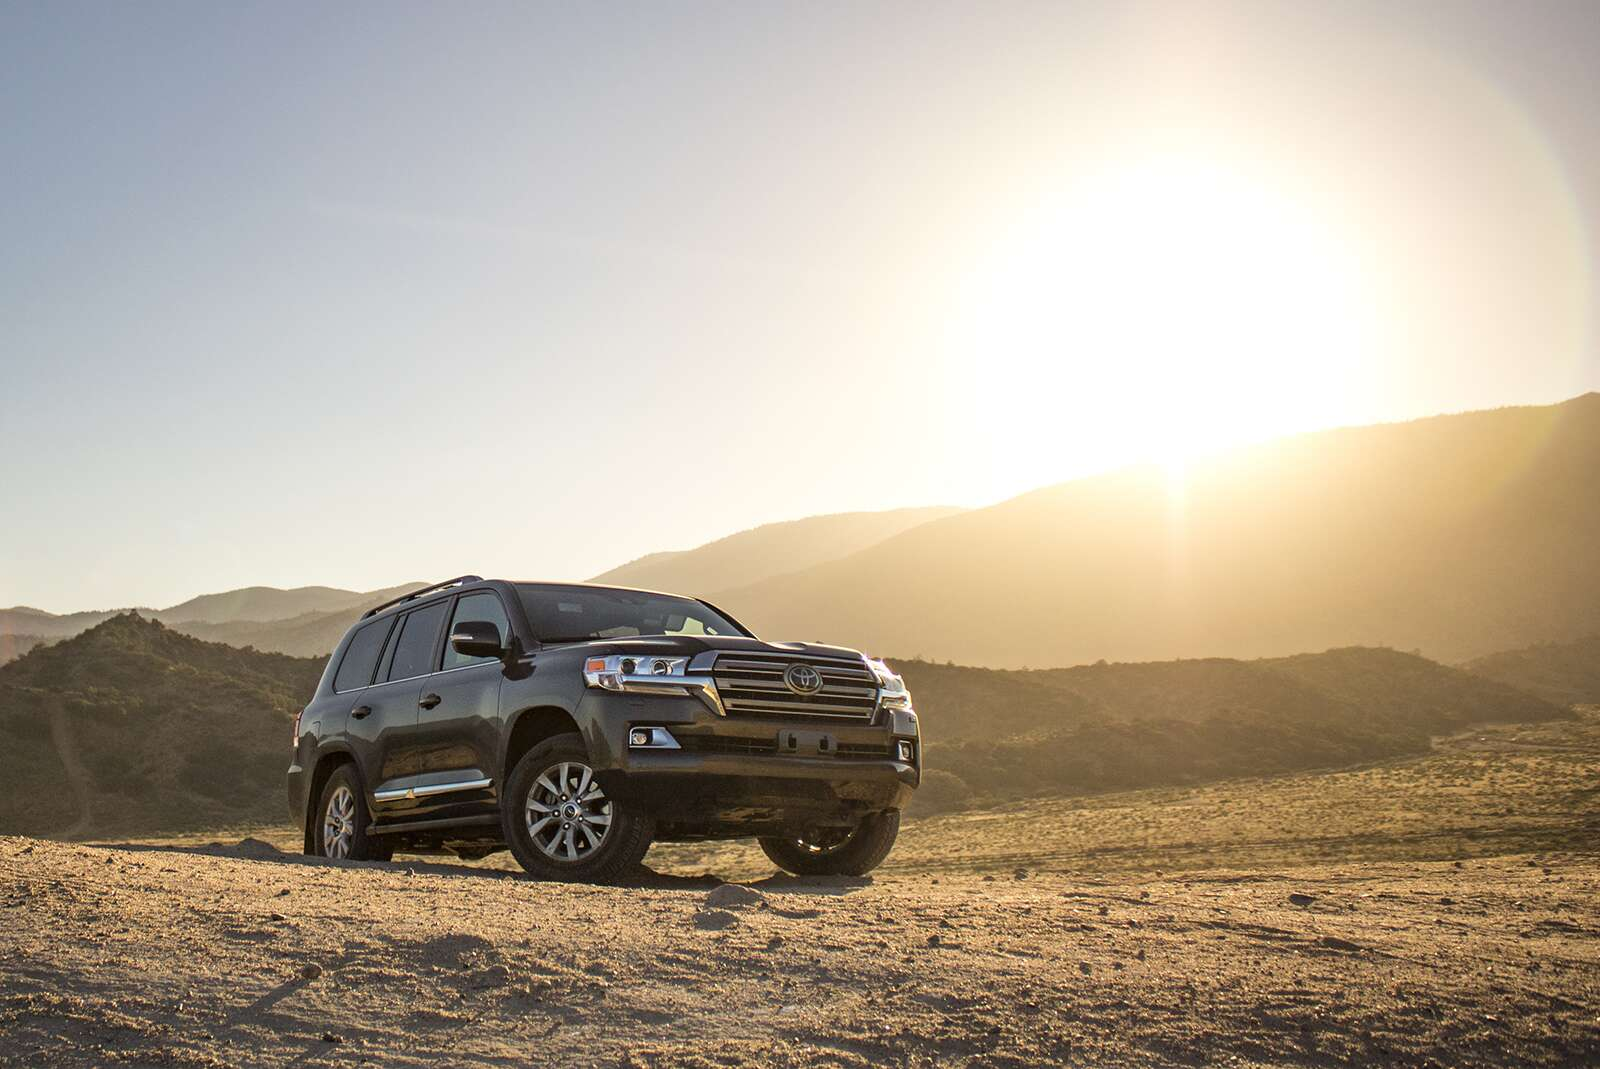 2018 Toyota Land Cruiser Group Review The Eternal Flame Burns Off Road Kyle Cheromcha